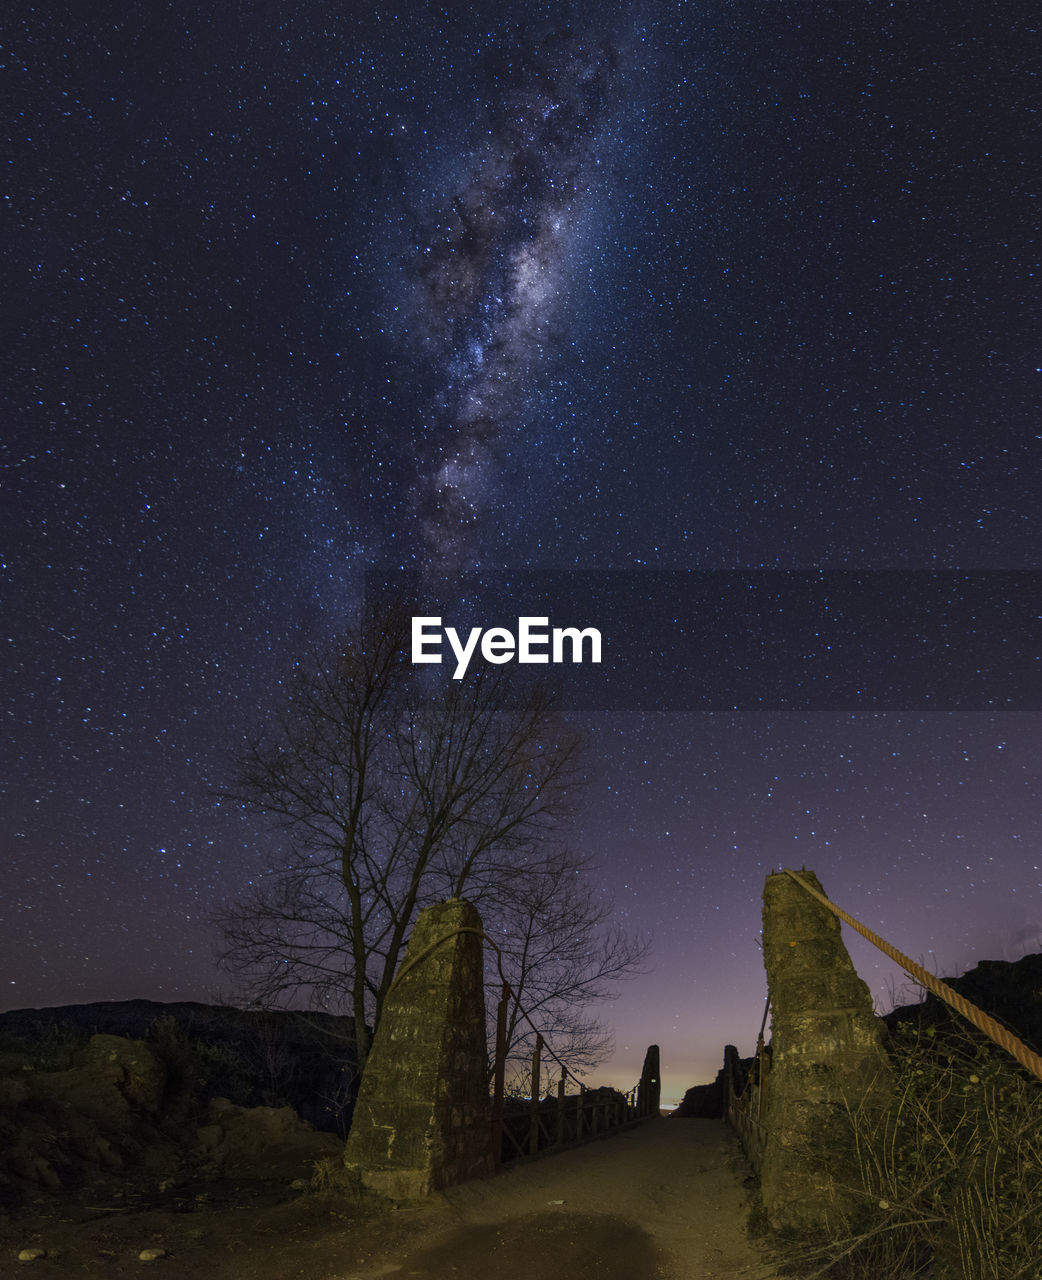 star - space, sky, astronomy, night, space, scenics - nature, beauty in nature, tranquility, galaxy, tree, tranquil scene, low angle view, star, nature, no people, plant, star field, infinity, architecture, idyllic, outdoors, milky way, space and astronomy